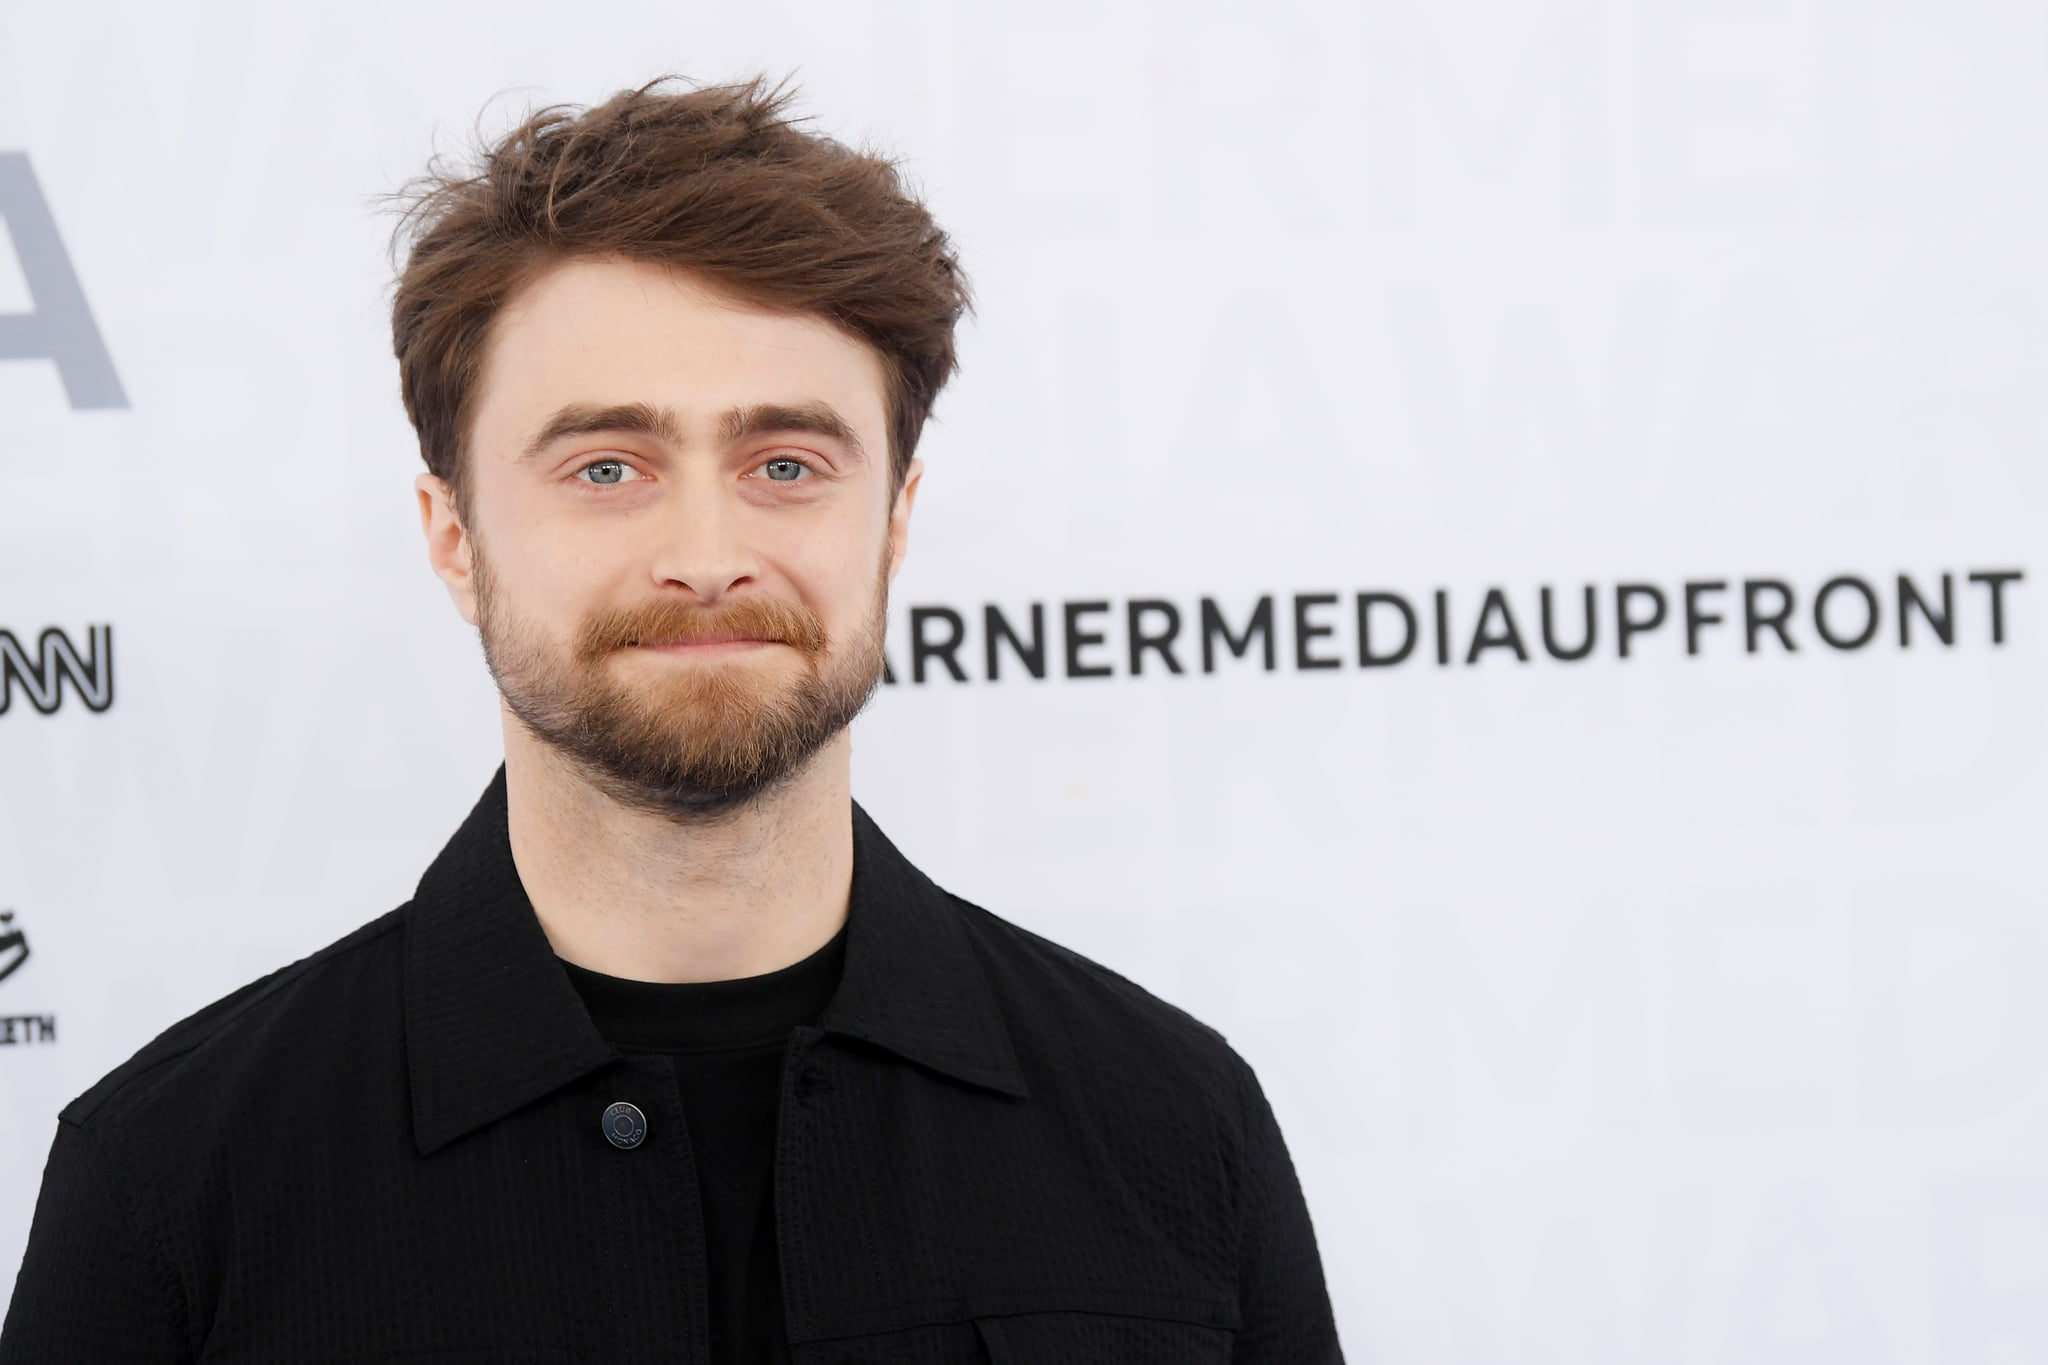 NEW YORK, NEW YORK - MAY 15: Daniel Radcliffe of TBS's Miracle Workers attends the WarnerMedia Upfront 2019 arrivals on the red carpet at The Theatre at Madison Square Garden on May 15, 2019 in New York City. 602140 (Photo by Dimitrios Kambouris/Getty Images for WarnerMedia)